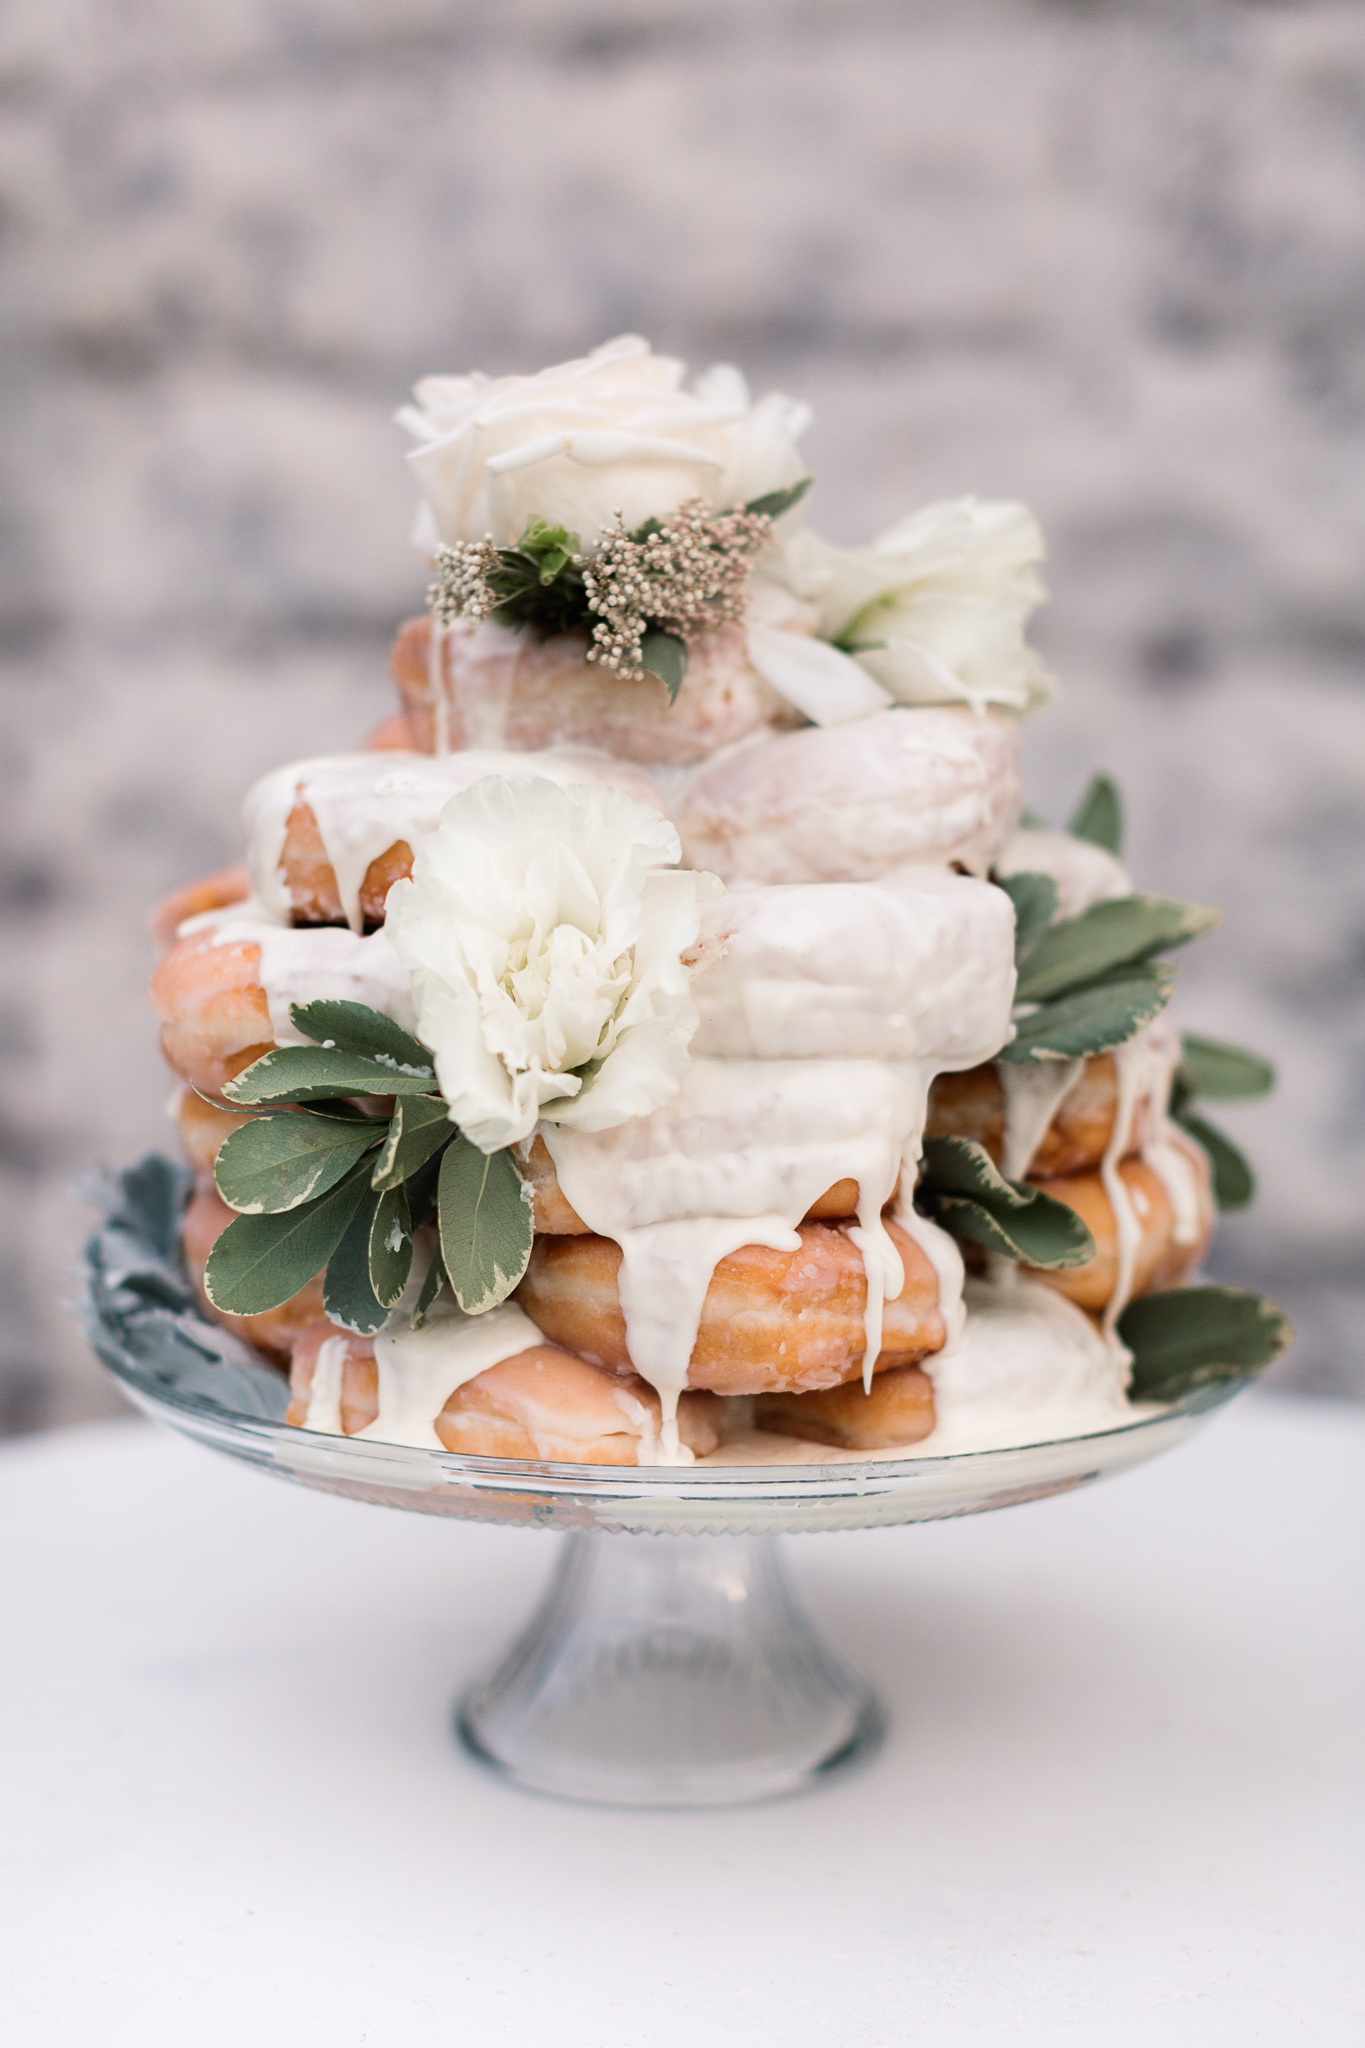 donut wedding cakes - photo by B.Matthews Creative https://ruffledblog.com/organic-italian-inspired-wedding-ideas